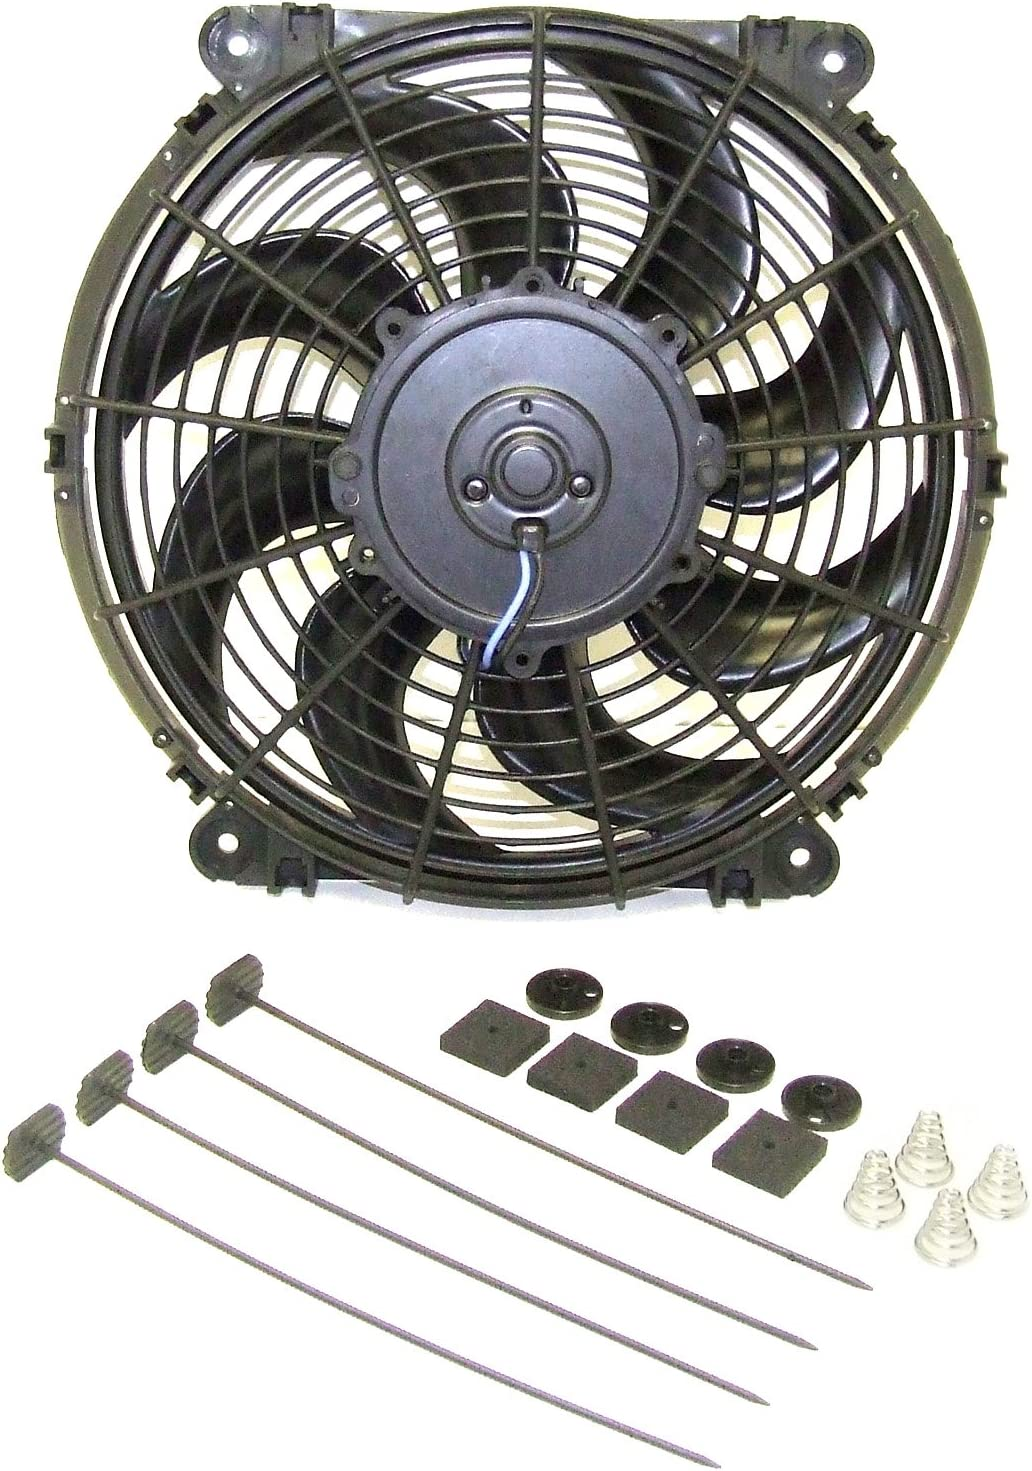 Hayden Rapid-Cool Universal Fit Reversible Fan Kit (3680) Diameter 12 Inches